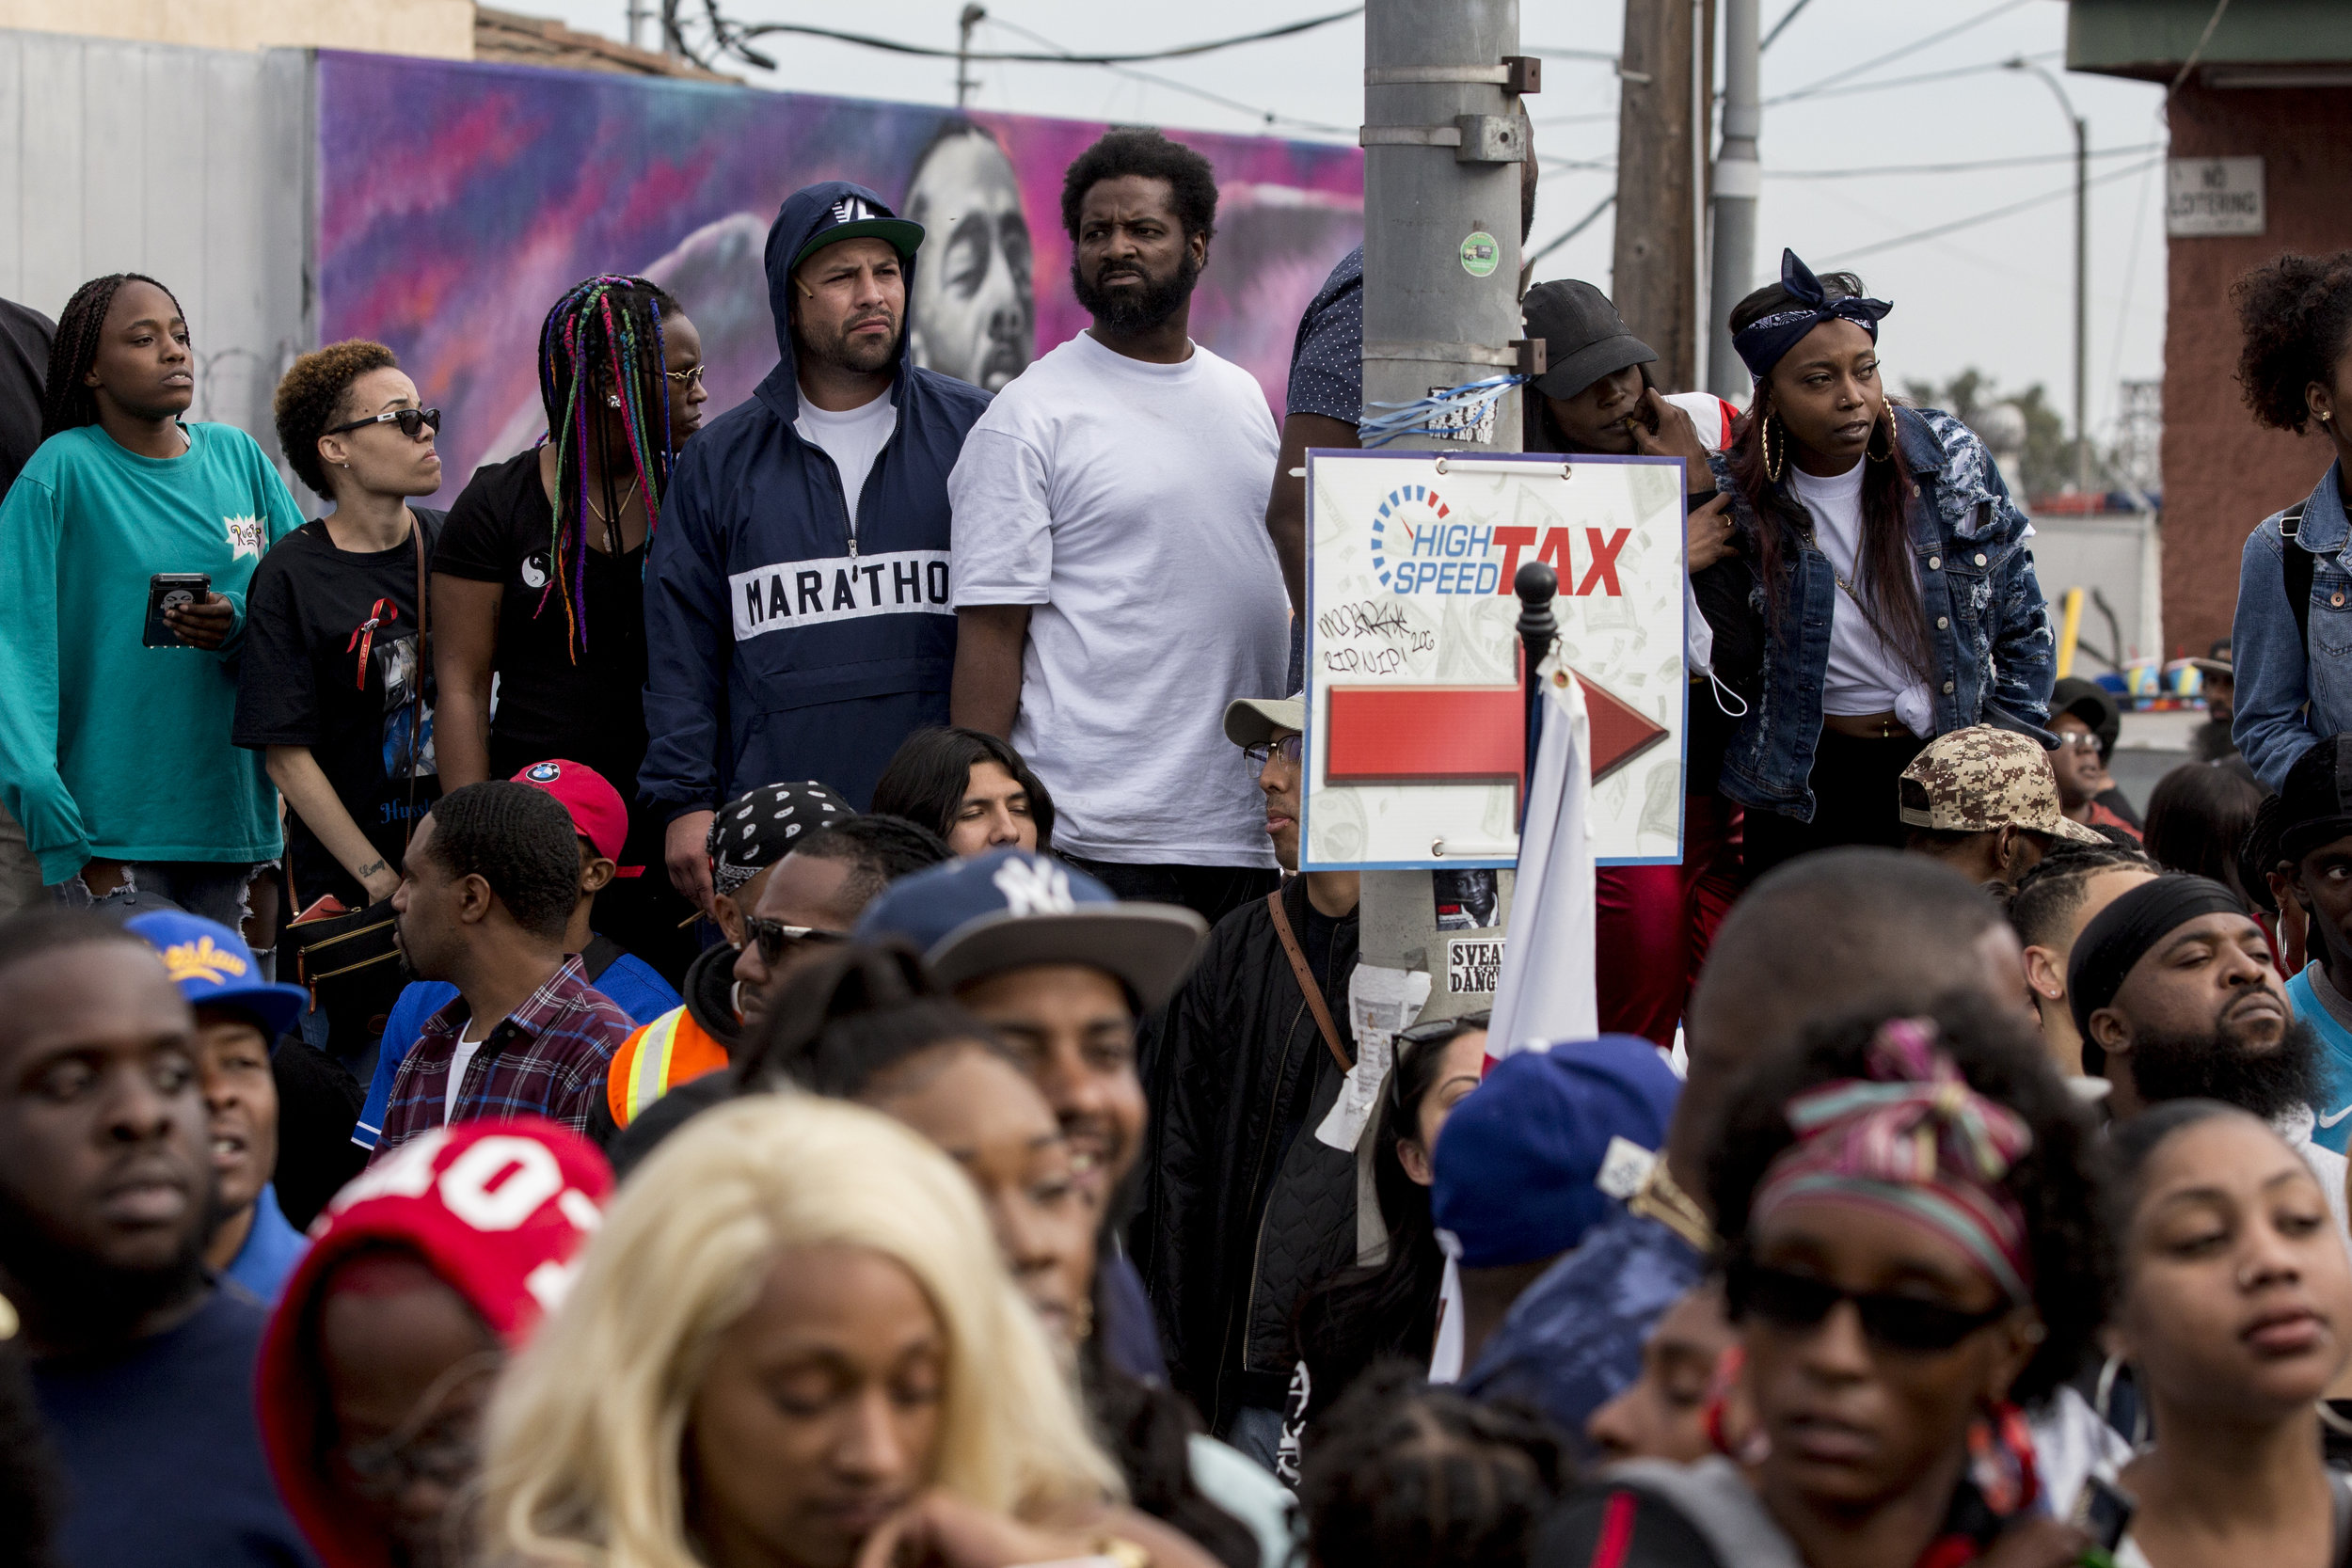 """Fans turn out to say goodbye to Nipsey Hussle with a mural of his image at their backs along Slauson Ave. near The Marathon Clothing store, the location of his murder, in Los Angeles, California on April 11, 2019.  The hearse carrying the casket of the slain rapper, Nipsey Hussle, will journey a 25.5 mile """"Victory Lap"""" through South Central and ending at the Angelus Funeral home to allow his fans, who could not attend the ceremony, to say goodbye.  (Jose Lopez)"""